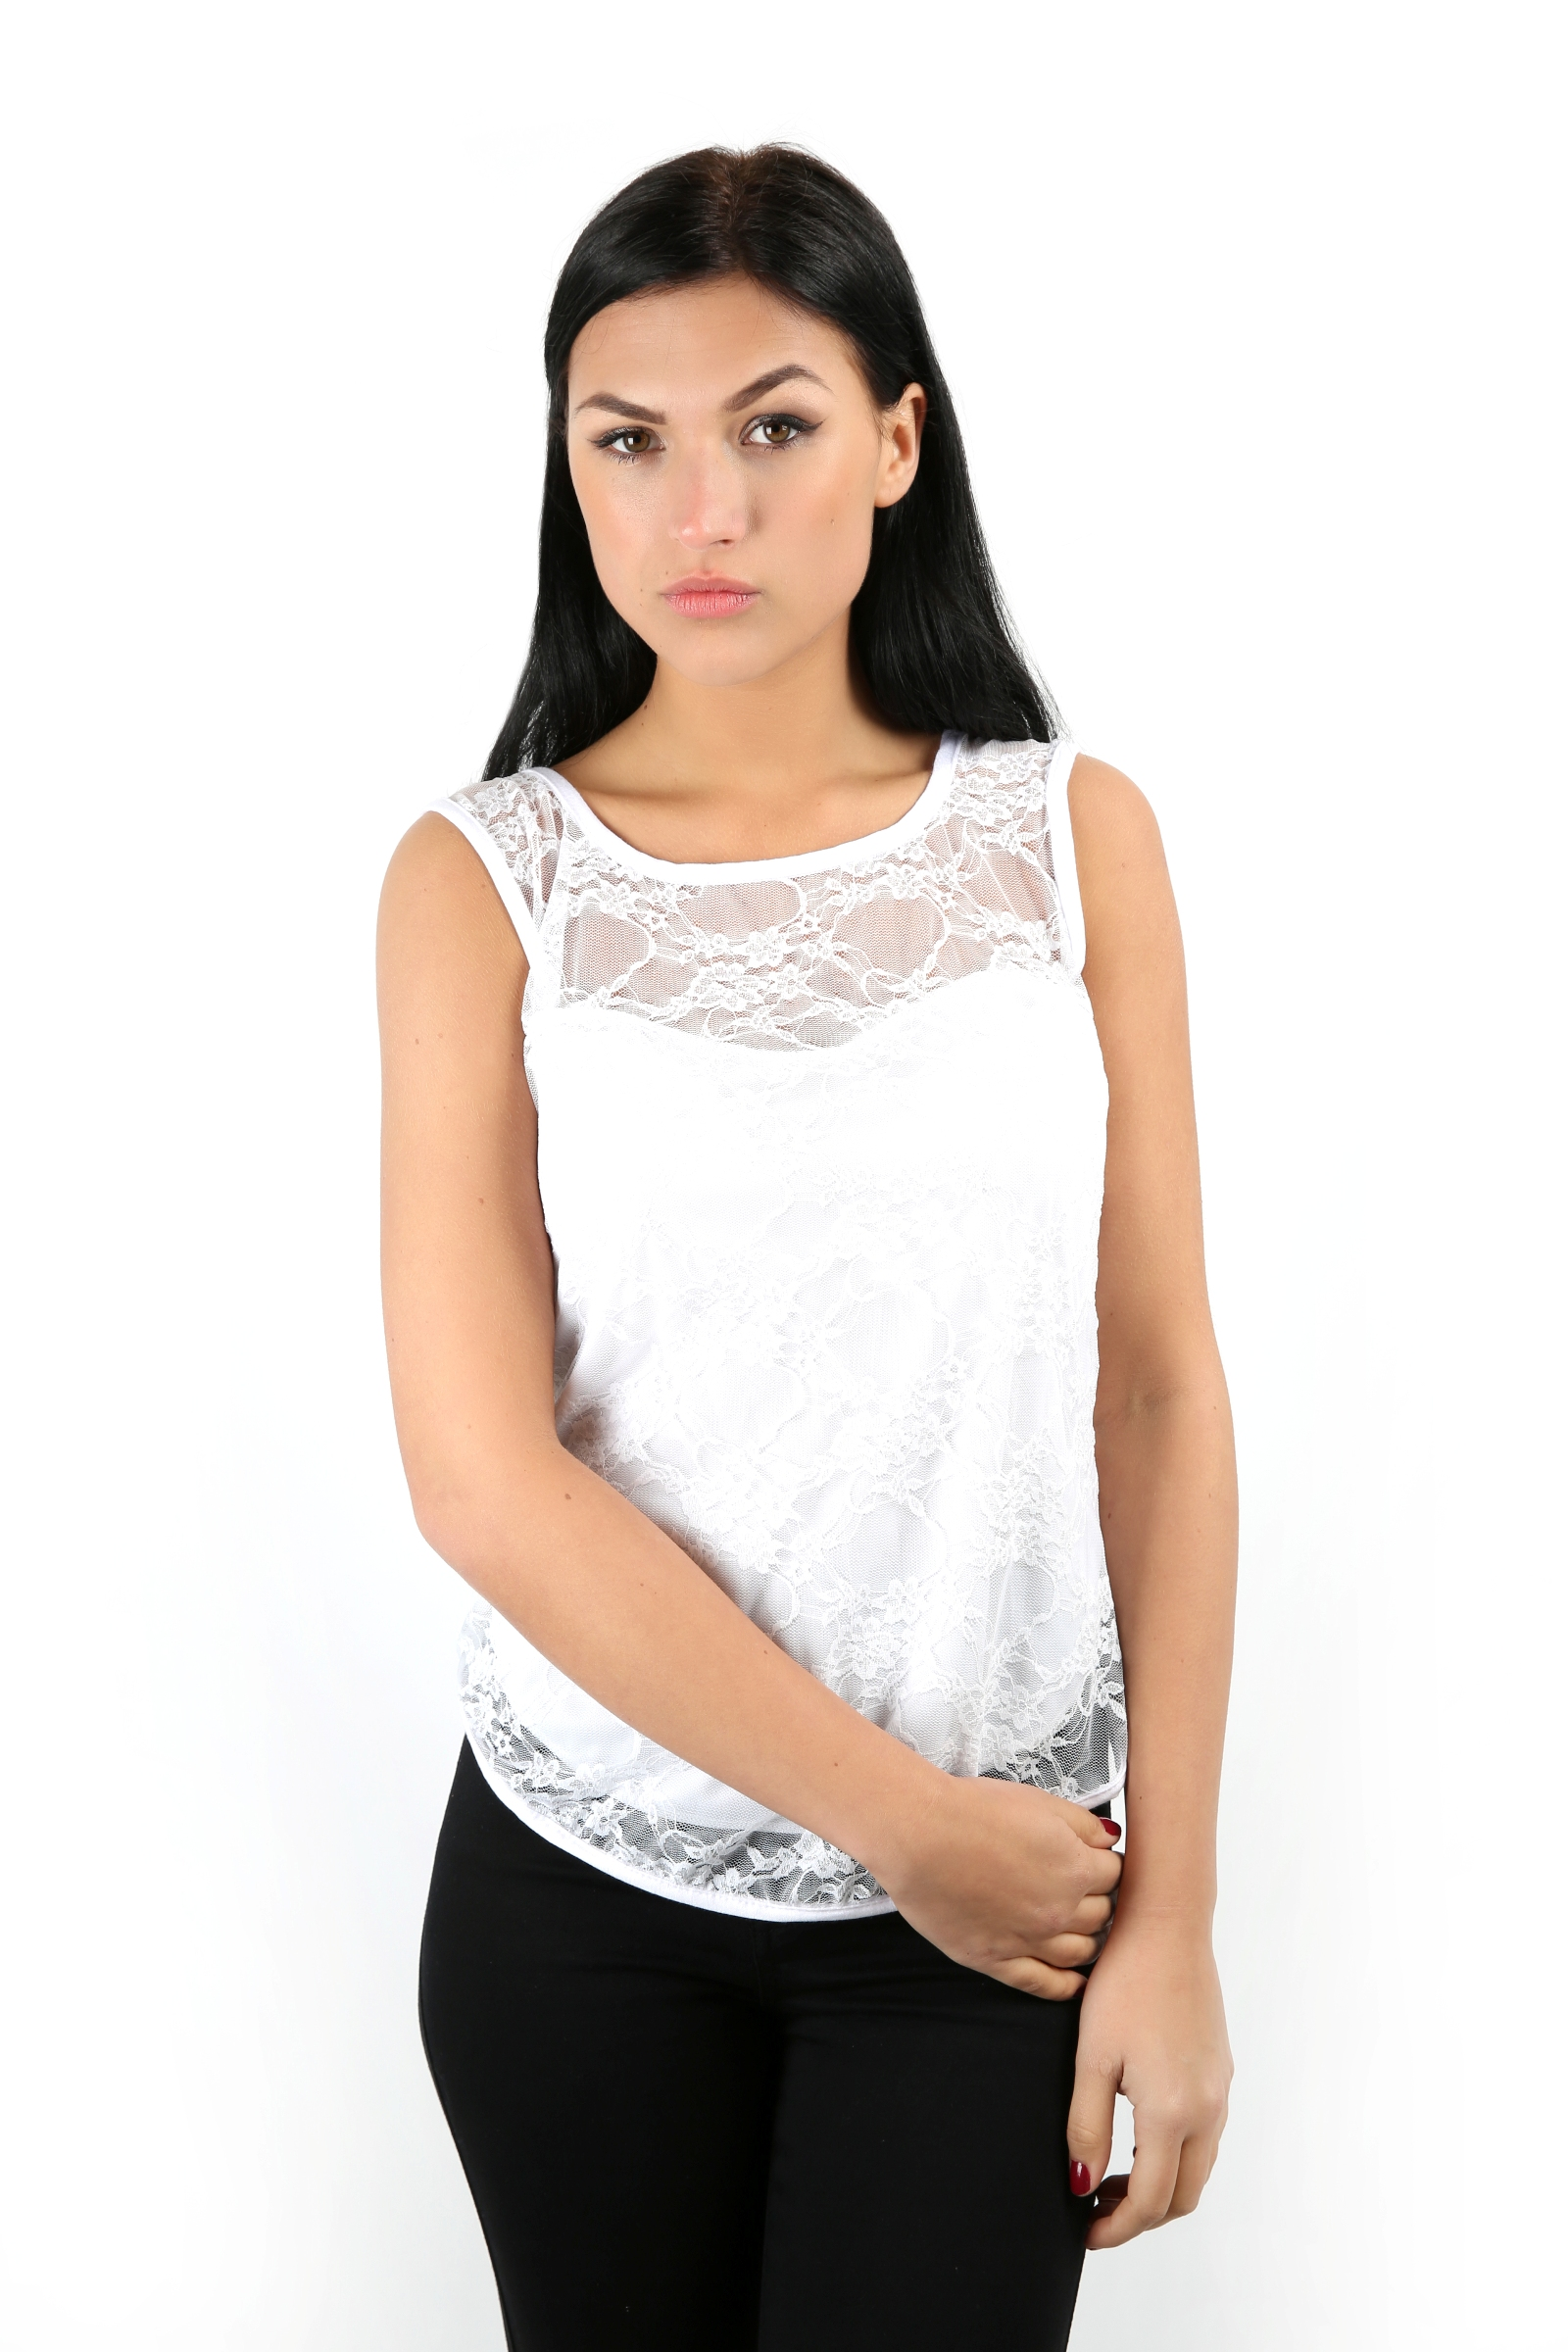 Ladies Stretch Bodycon Sleeveless Lace Top Womens T Shirt